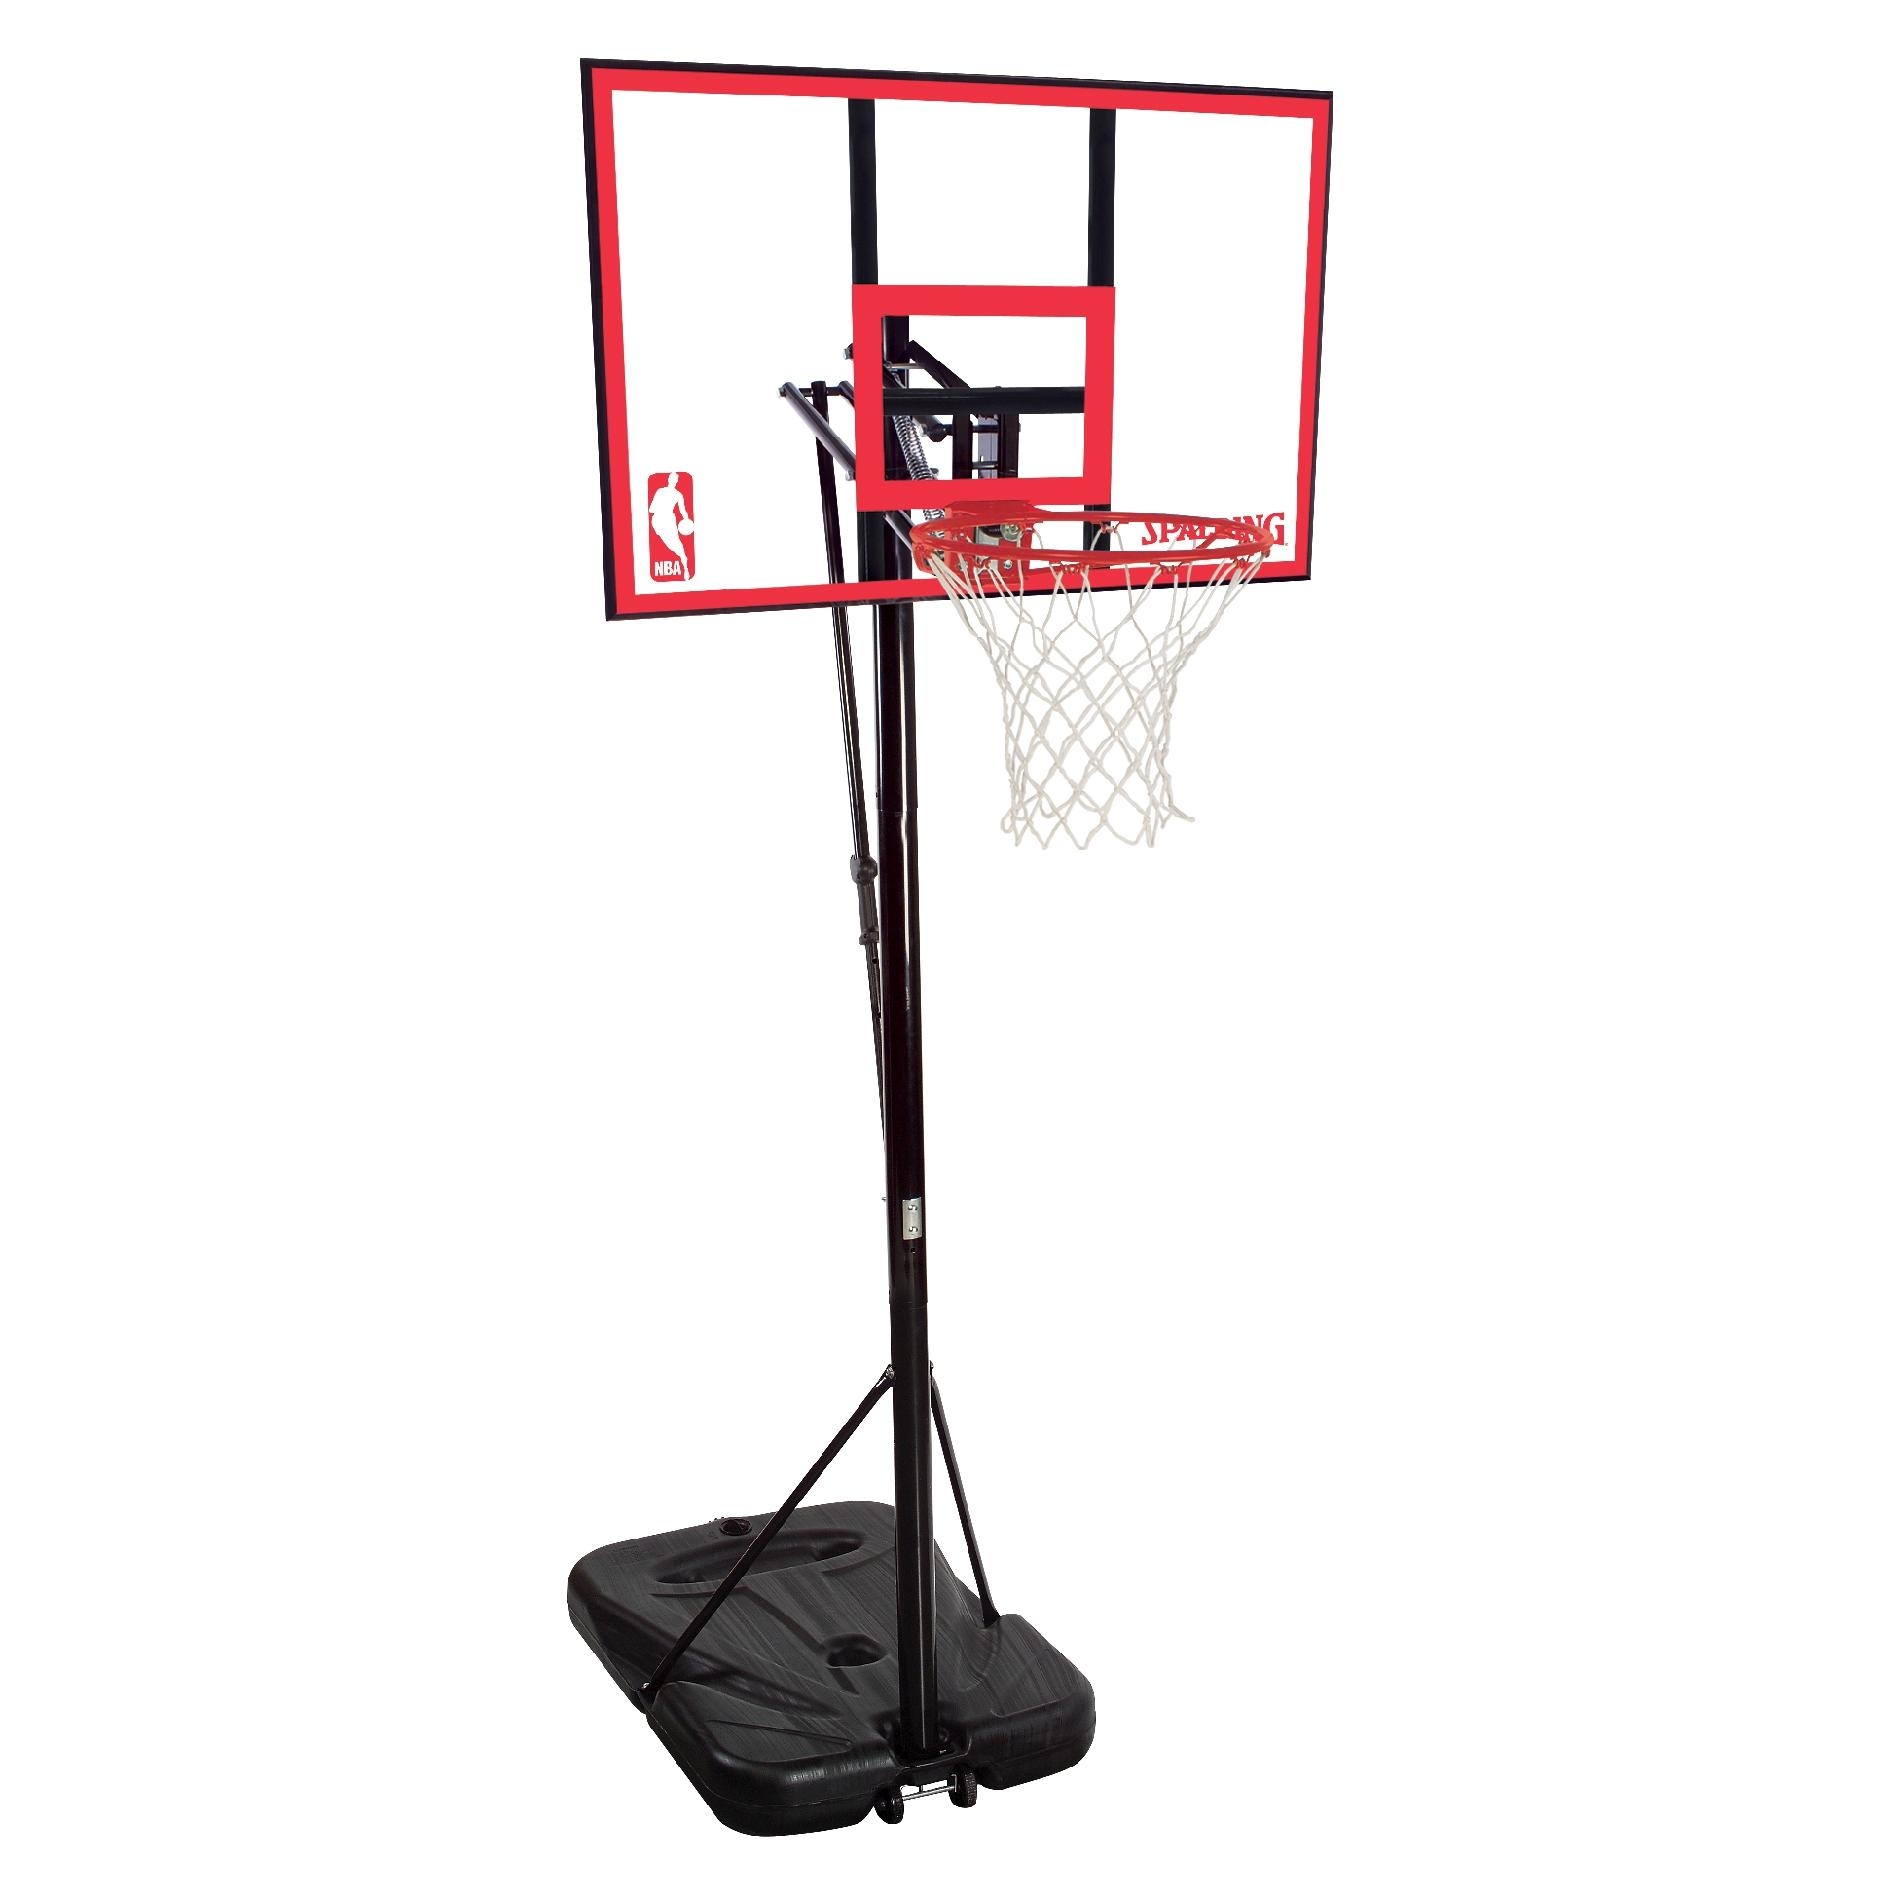 Basketball Ring Target Spalding Nba 44 Inch Pro Glide Portable Basketball System